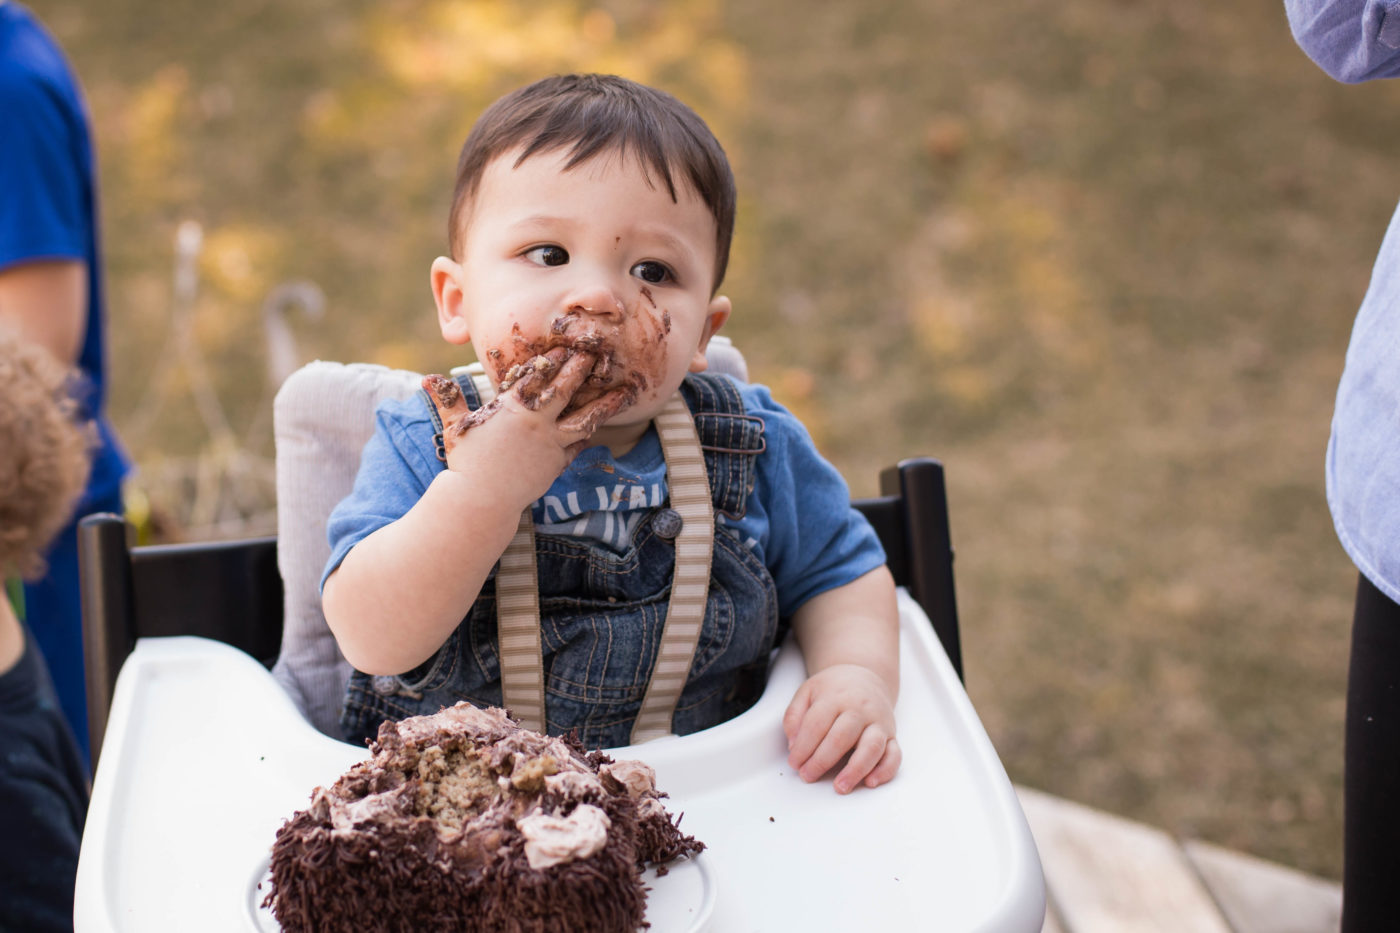 first_birthday_party_event_photographer-16-1400x933.jpg